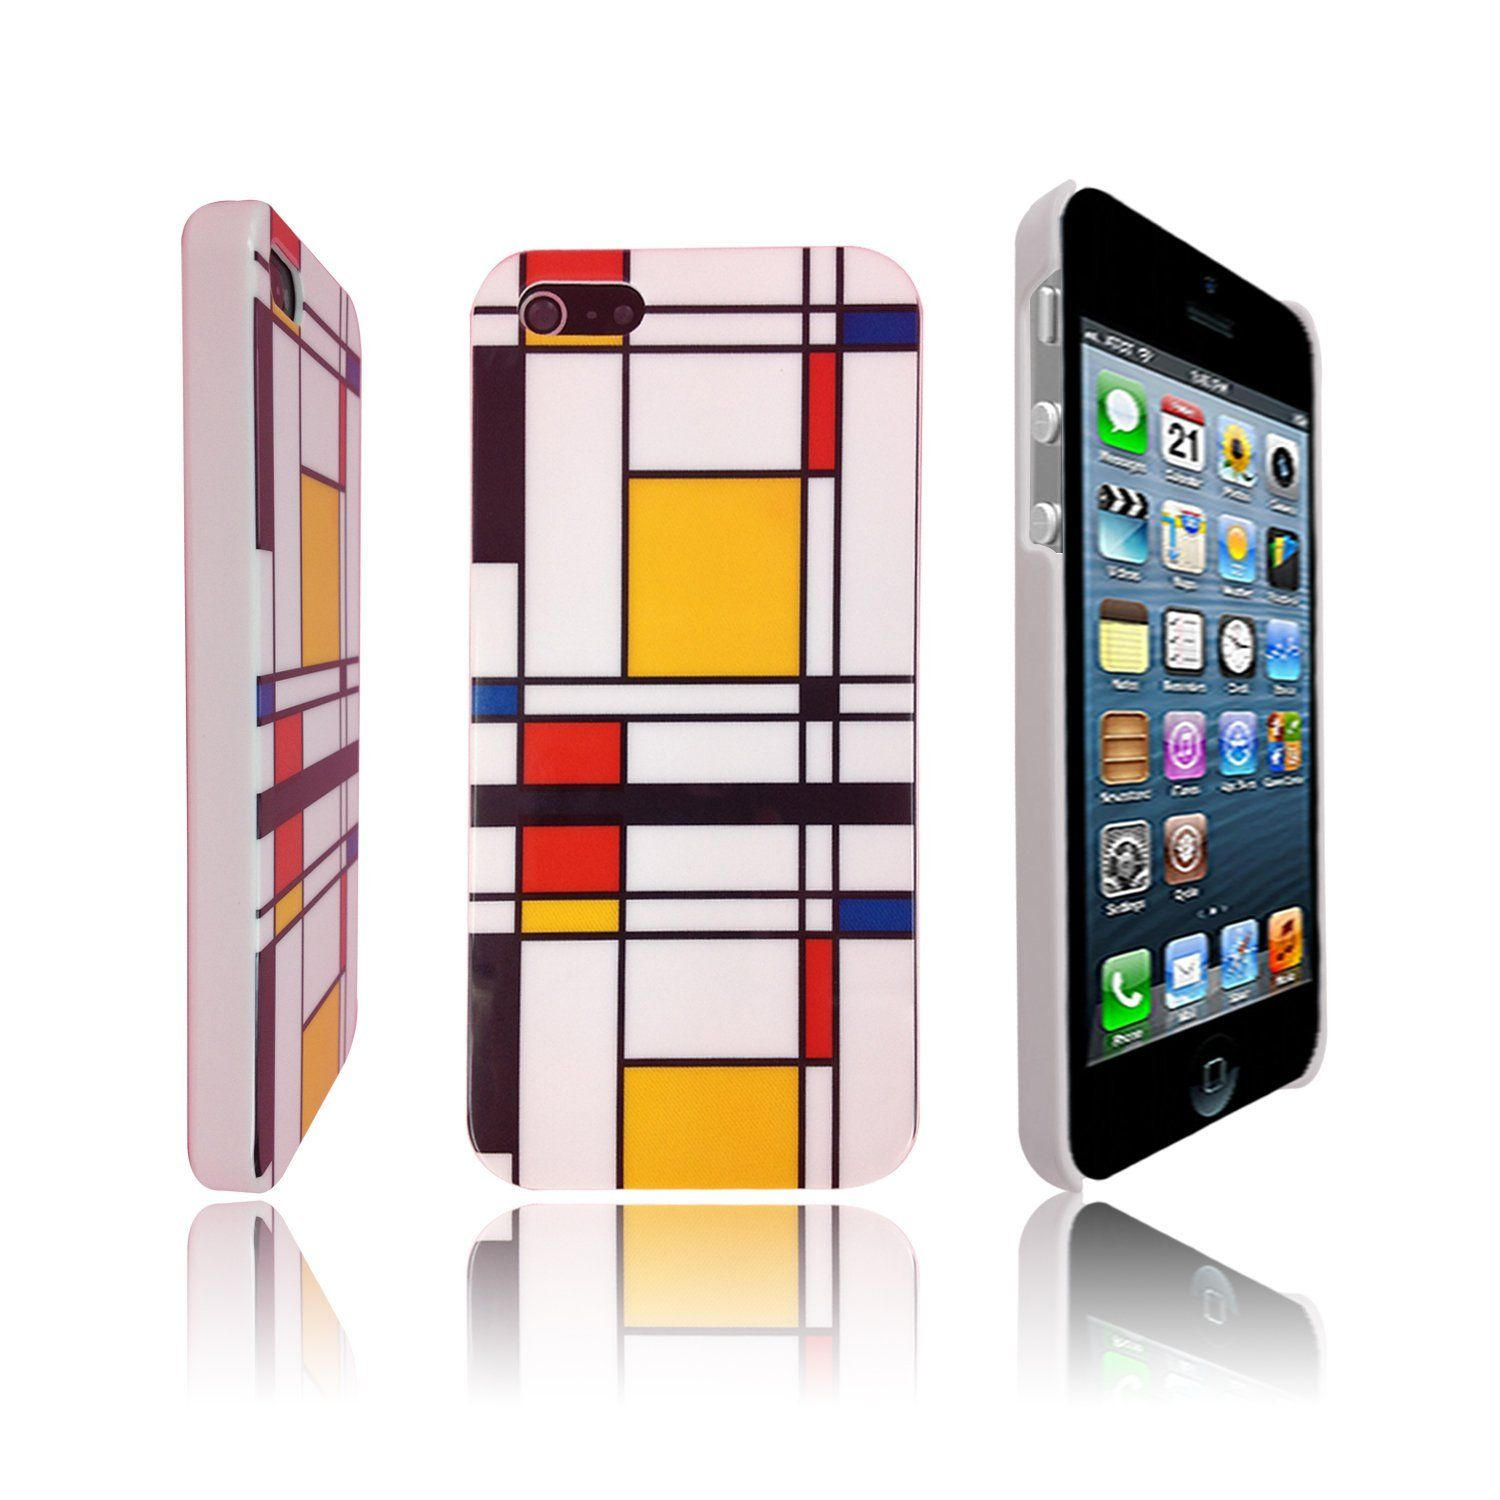 Volutz Painted Geometric Pattern ABS Hard Iphone 5 Case w/ LCD Screen Protector + Volutz Stylus Pen + Volutz Cleaning Cloth